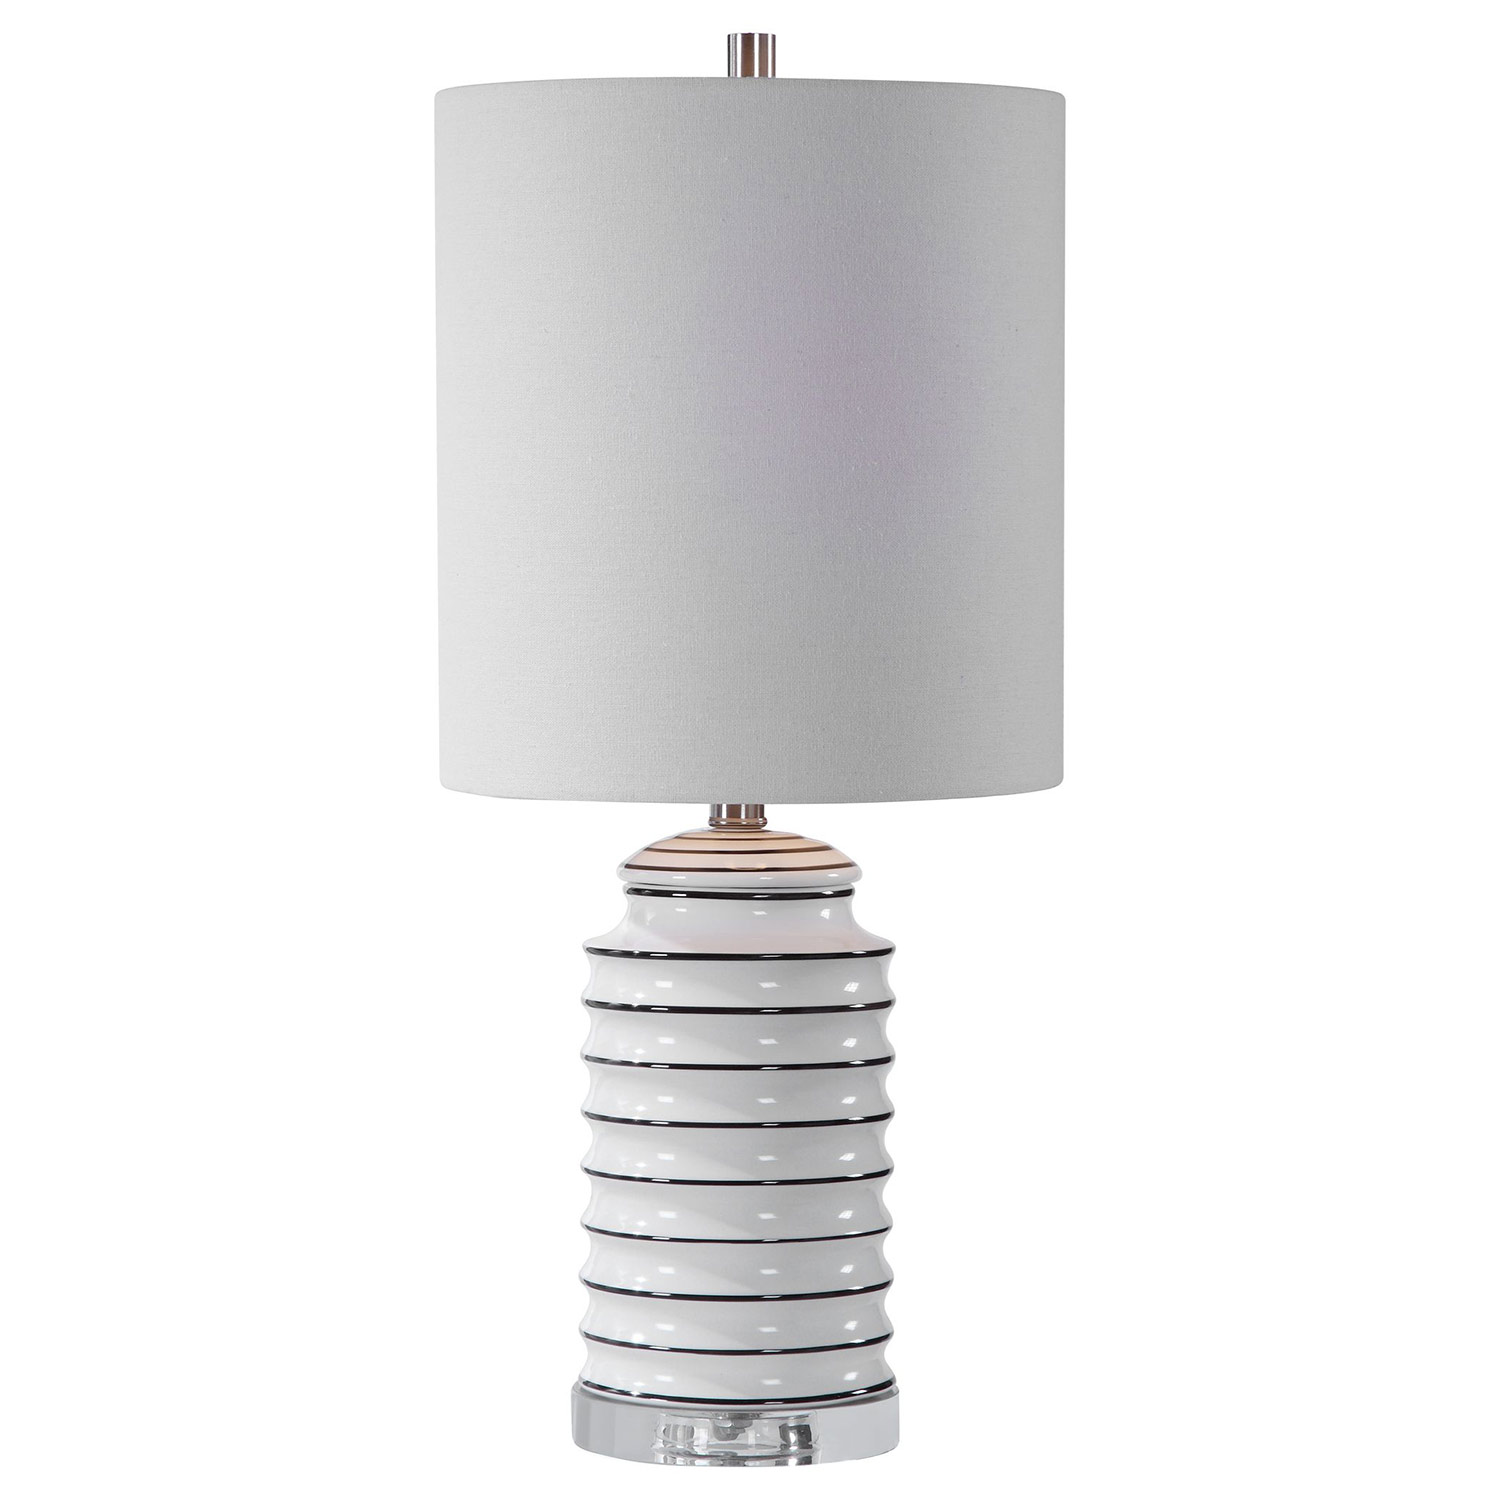 Uttermost Rayas Table Lamp - White